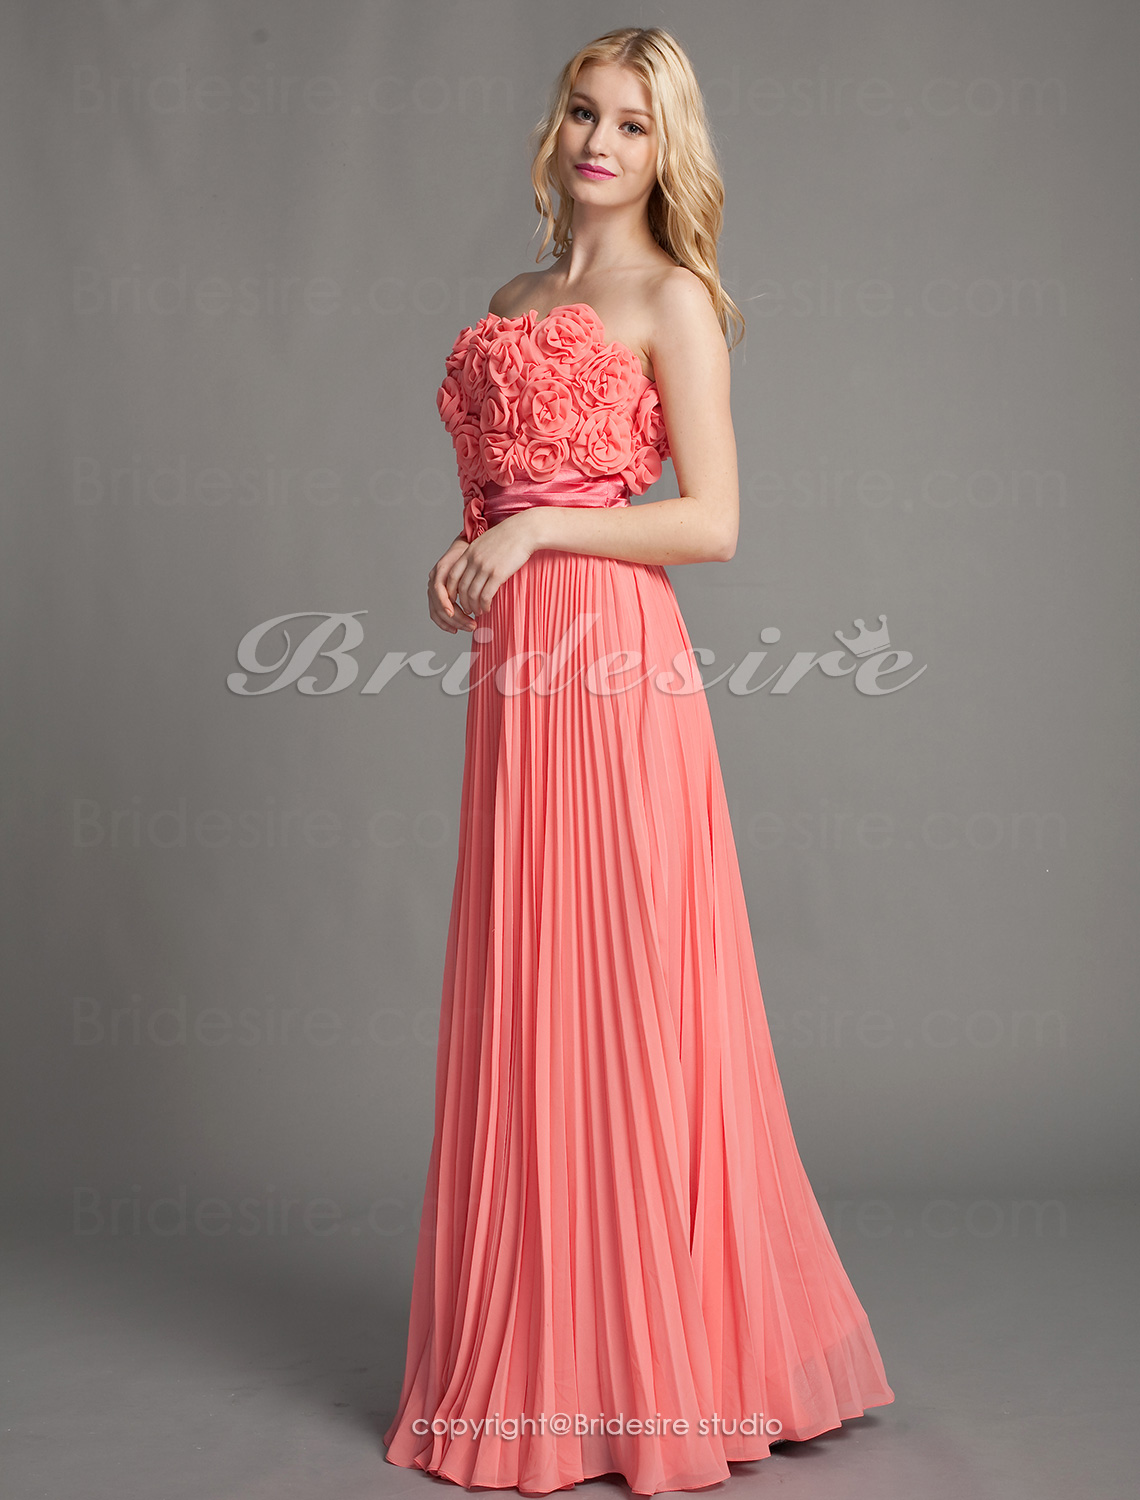 Sheath/Column Chiffon Floor-length Strapless Evening Dress